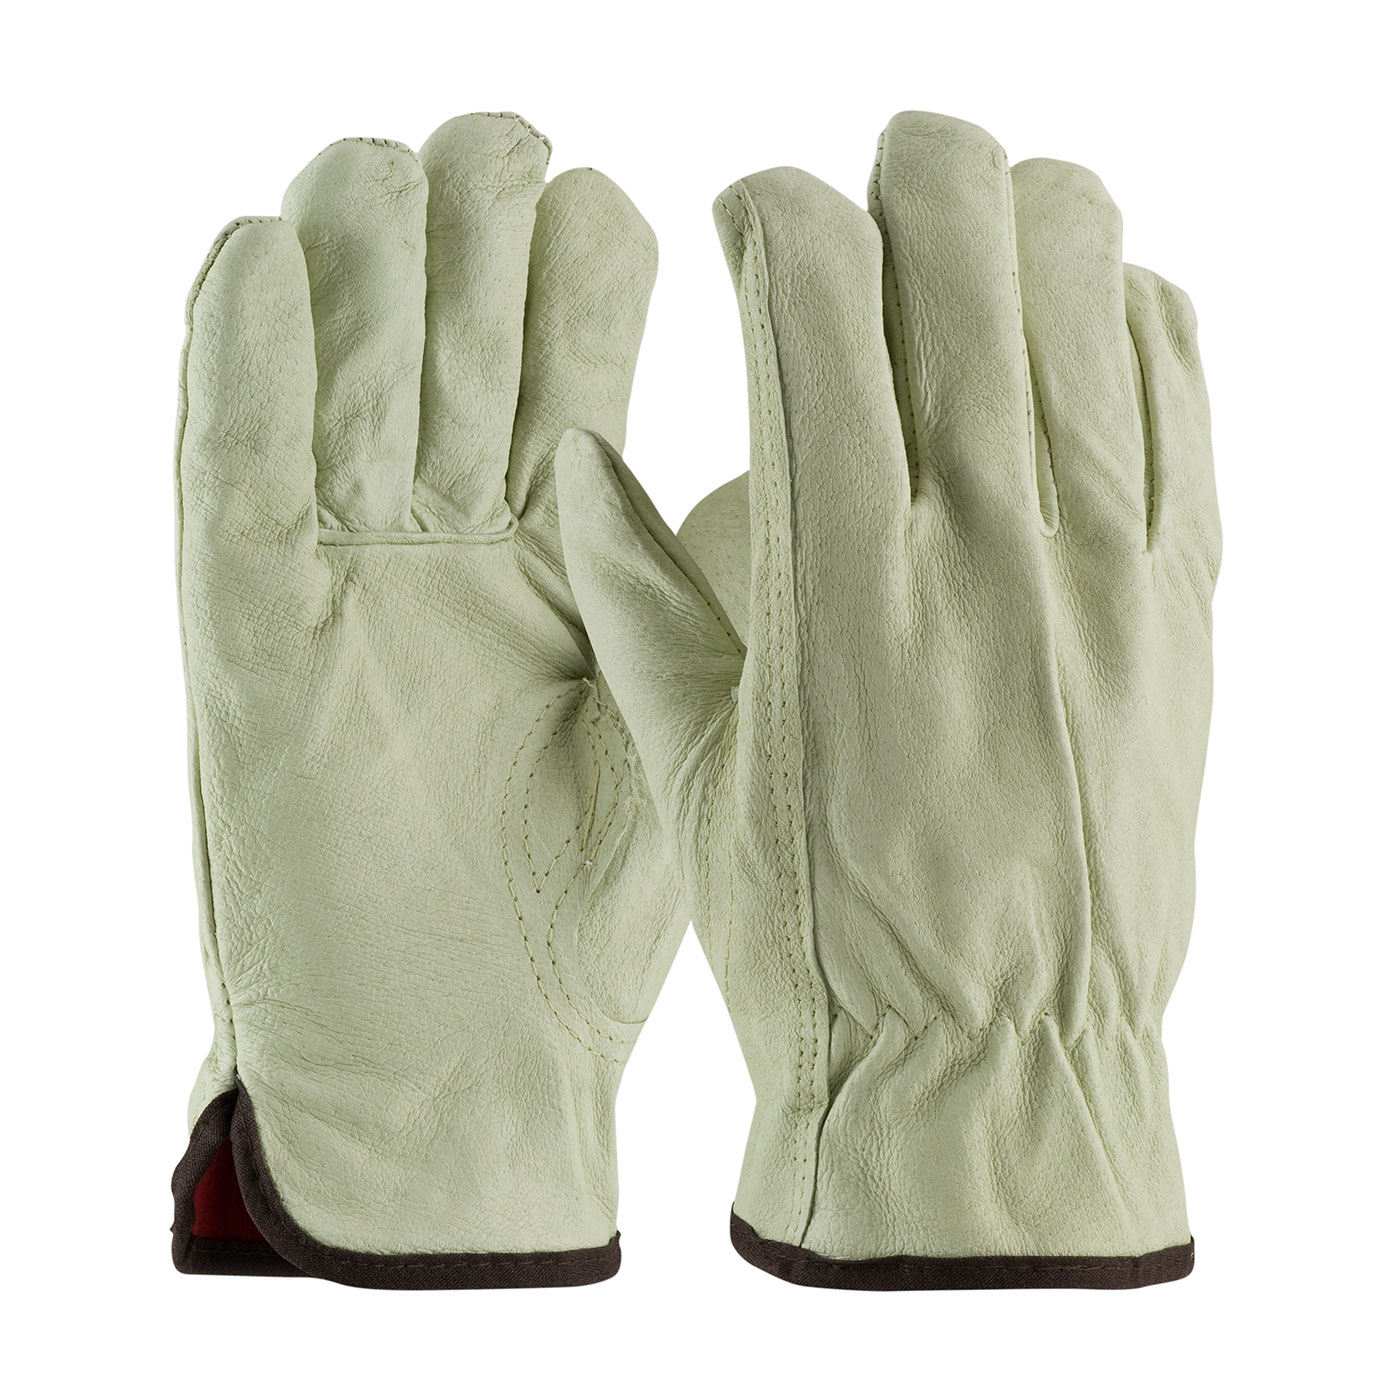 PIP 77-468/L Top Grain Pigskin Leather Glove with Red Thermal Lining - Keystone Thumb - Large PID-77 468 L